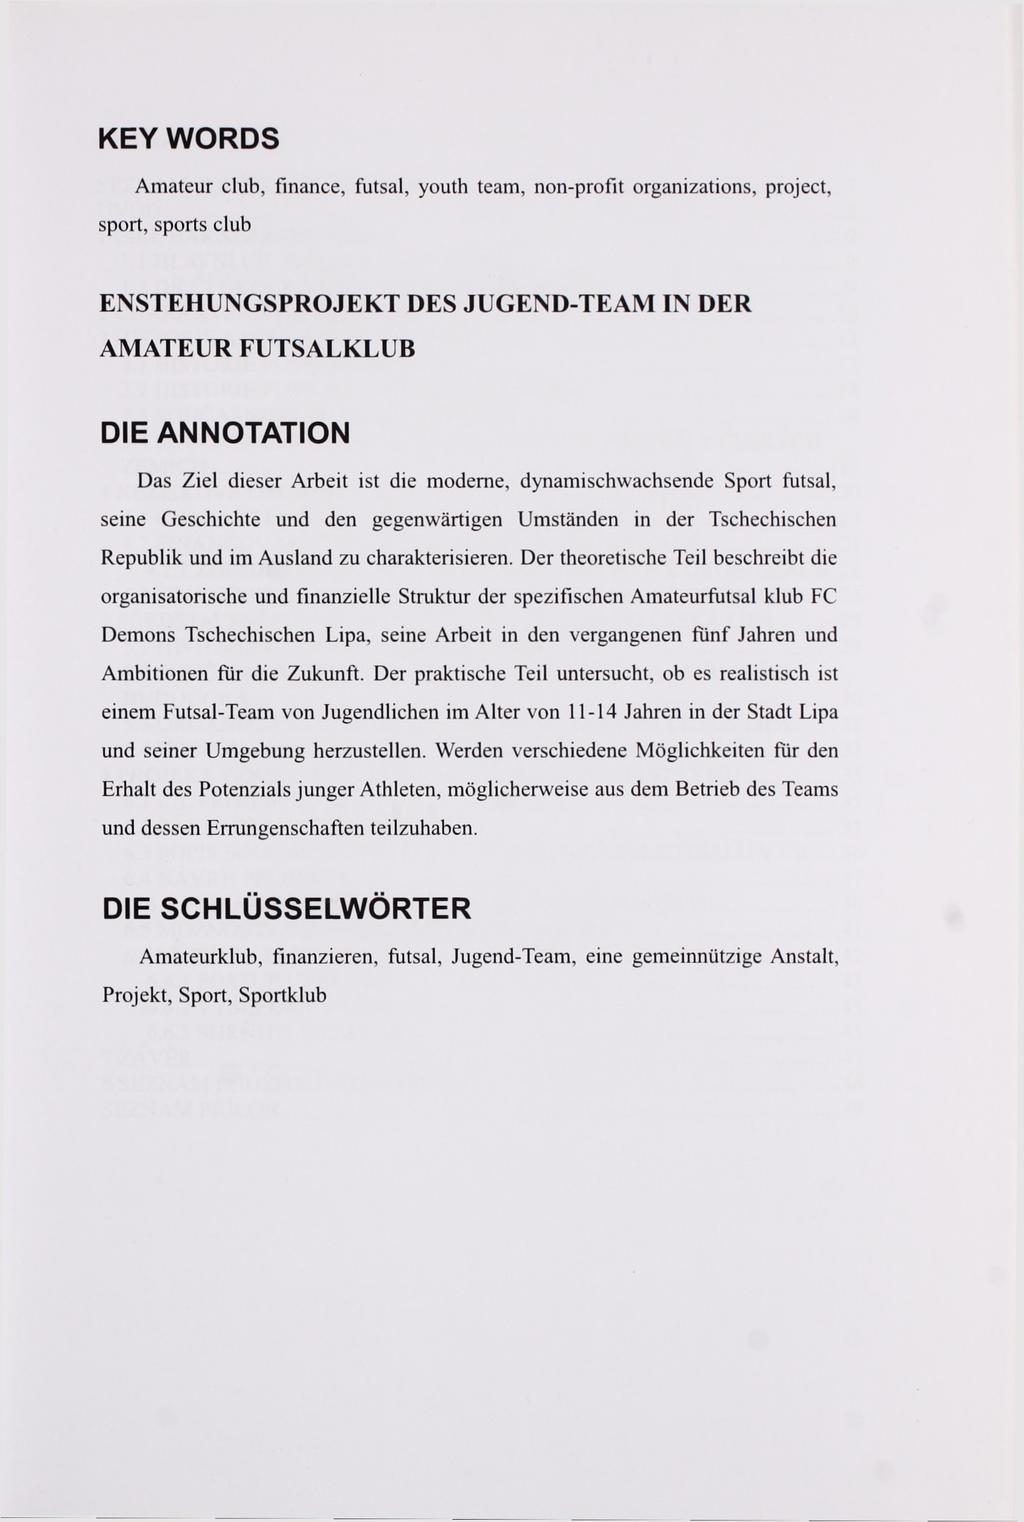 KEY WORDS Amateur club, finance, futsal, youth team, non-profit organizations, project, sport, sports club ENSTEHUNGSPROJEKT DES JUGEND-TEAM IN DER AMATEUR FUTSALKLUB DIE ANNOTATION Das Ziel dieser